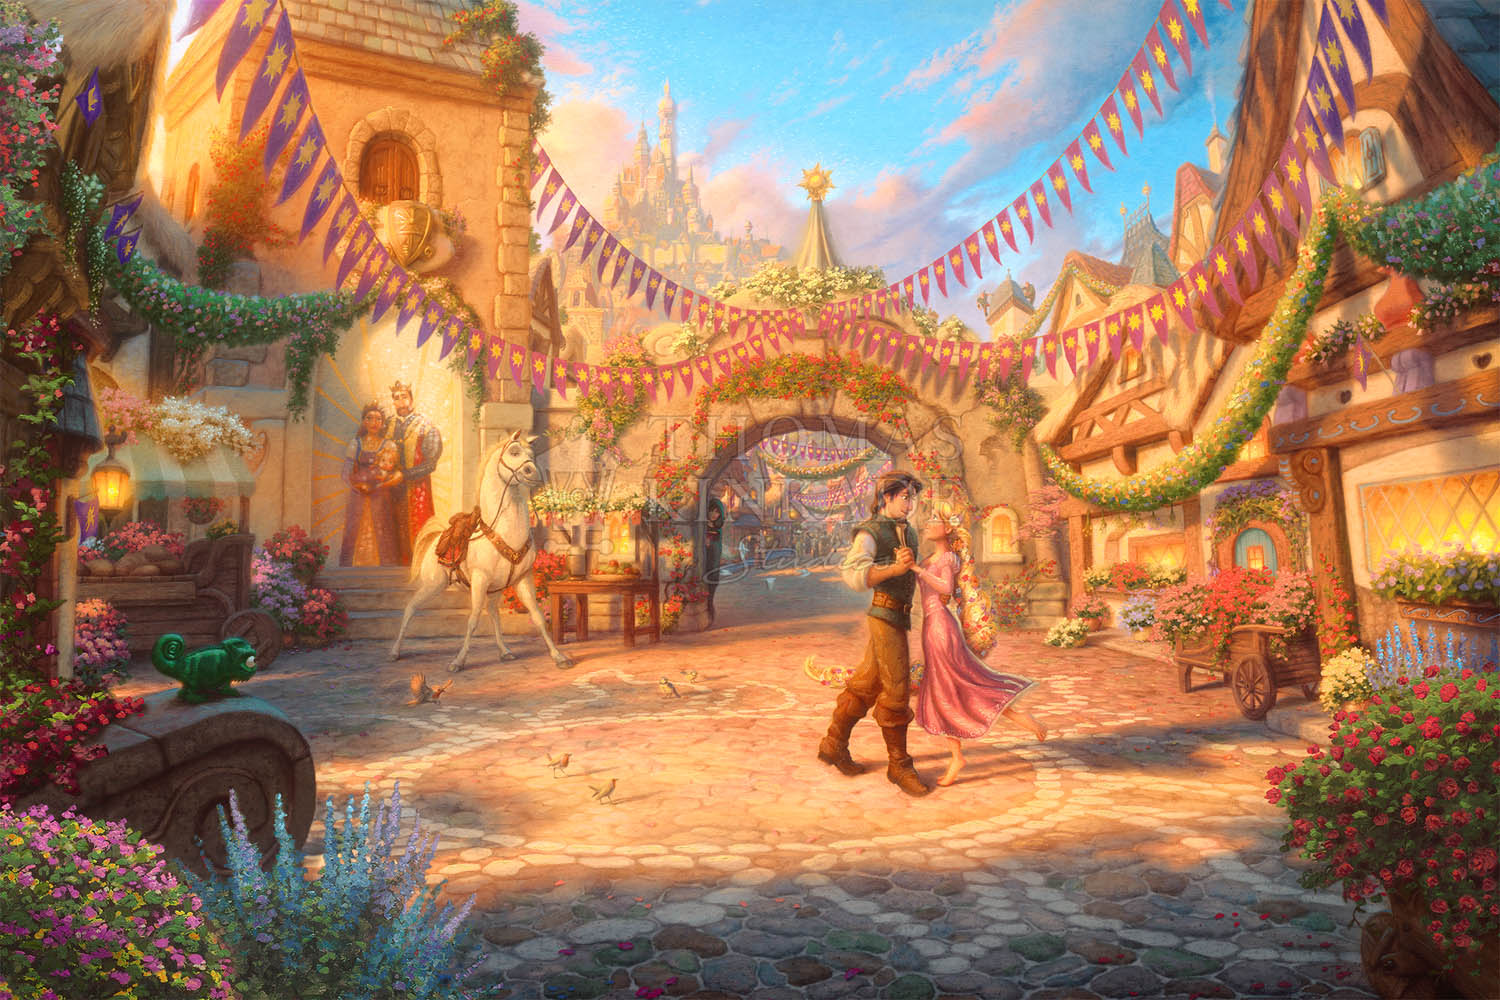 Rapunzel Dancing in the Sunlit Courtyard – Limited Edition Canvas